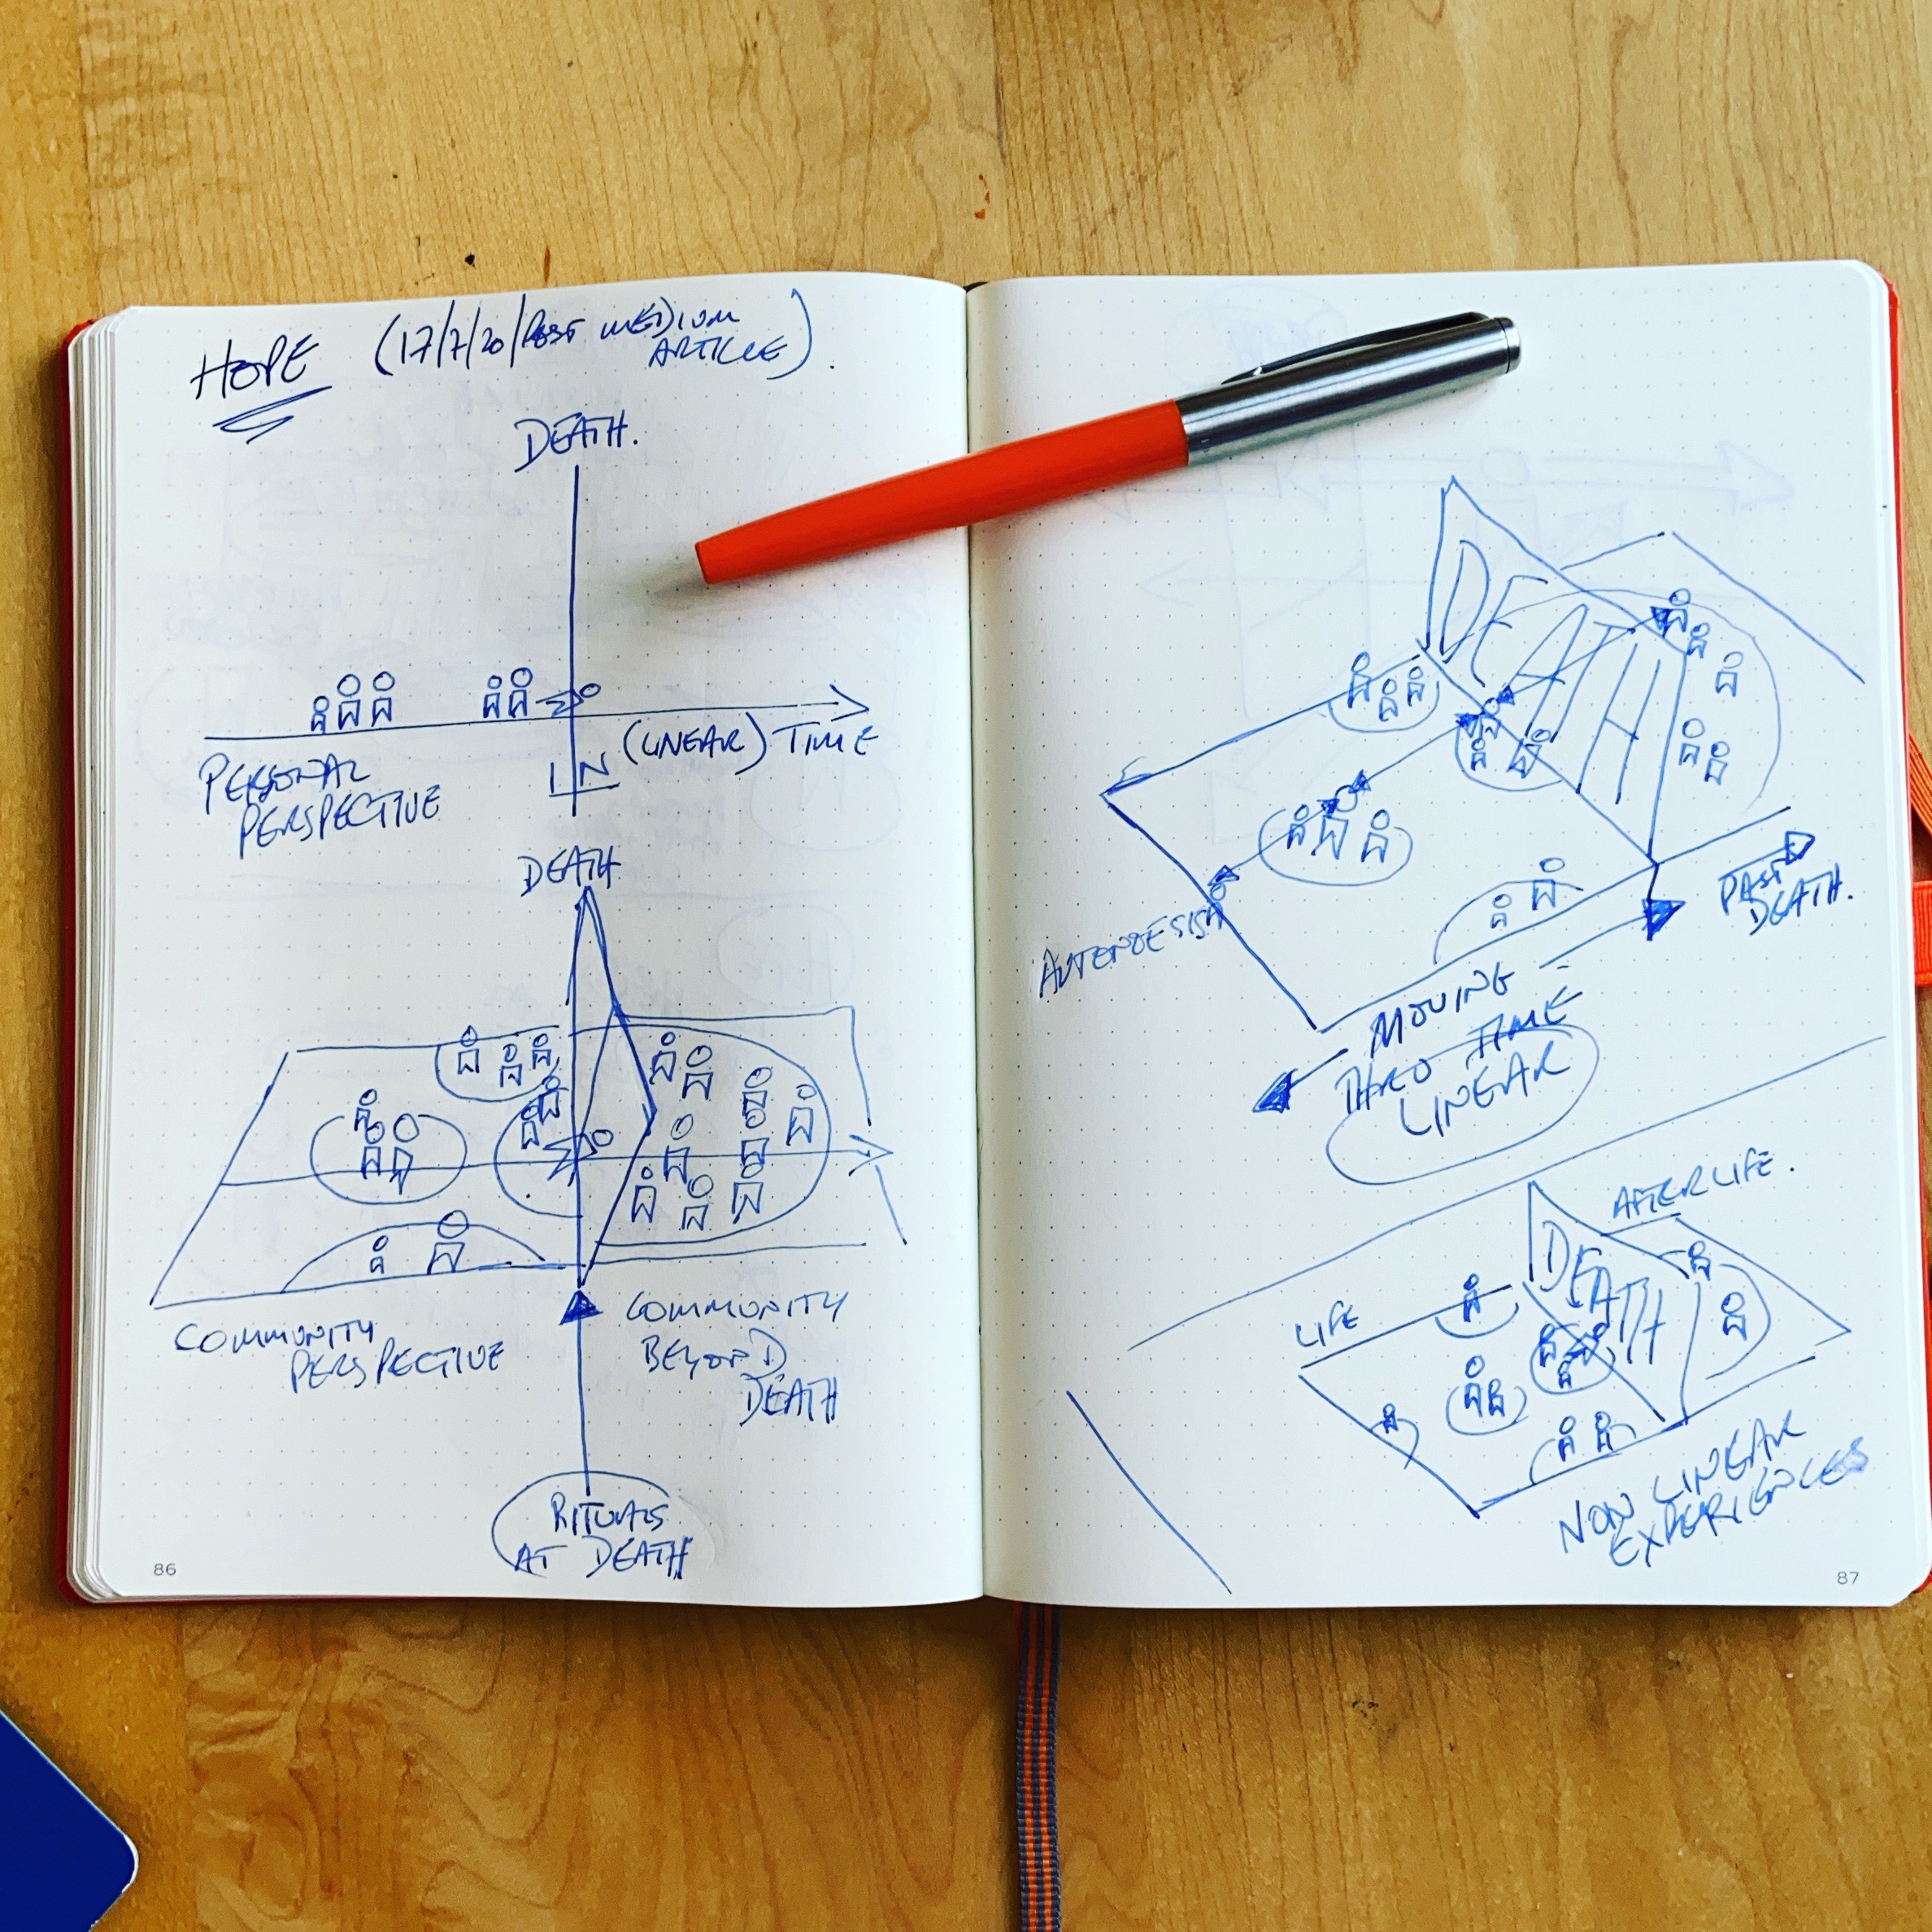 4 sketches of user journeys that cross over between life and death